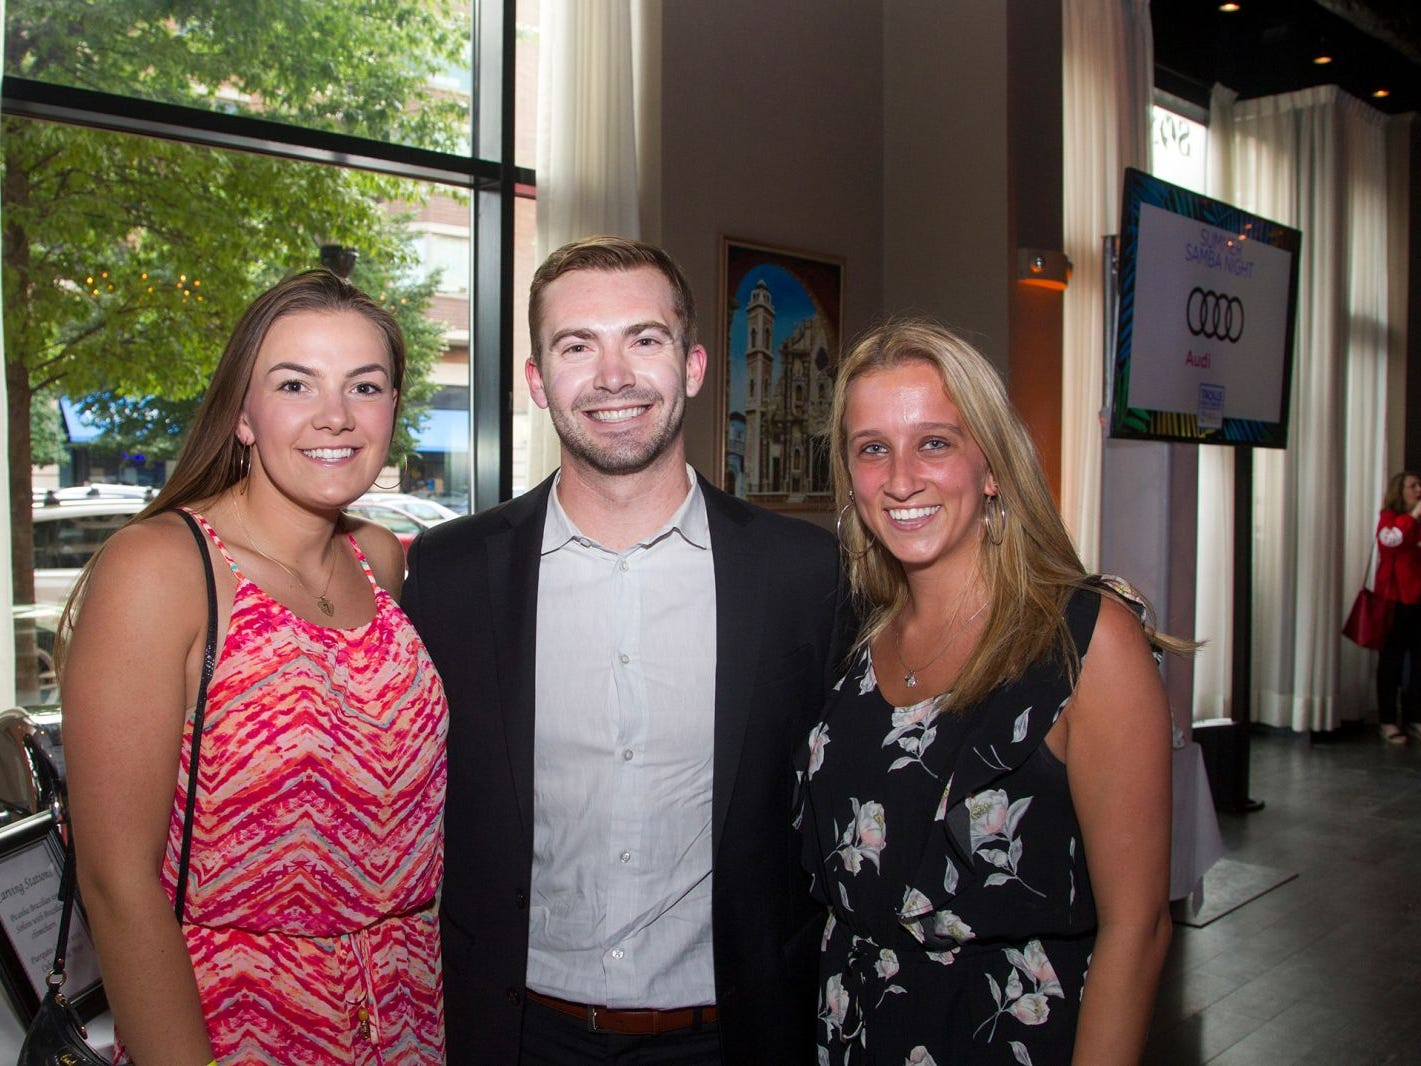 Nicole Imhof, Christian Gange, Casey Imbasciana. Summer Samba Night benefitting Tackle Kids Cancer hosted by Cara Robles, Luis Robles (NY Red Bulls Goalkeeper), Jennifer Farber, and Dr. Michael Farber at Son Cubano in West New York. 08/08/2018